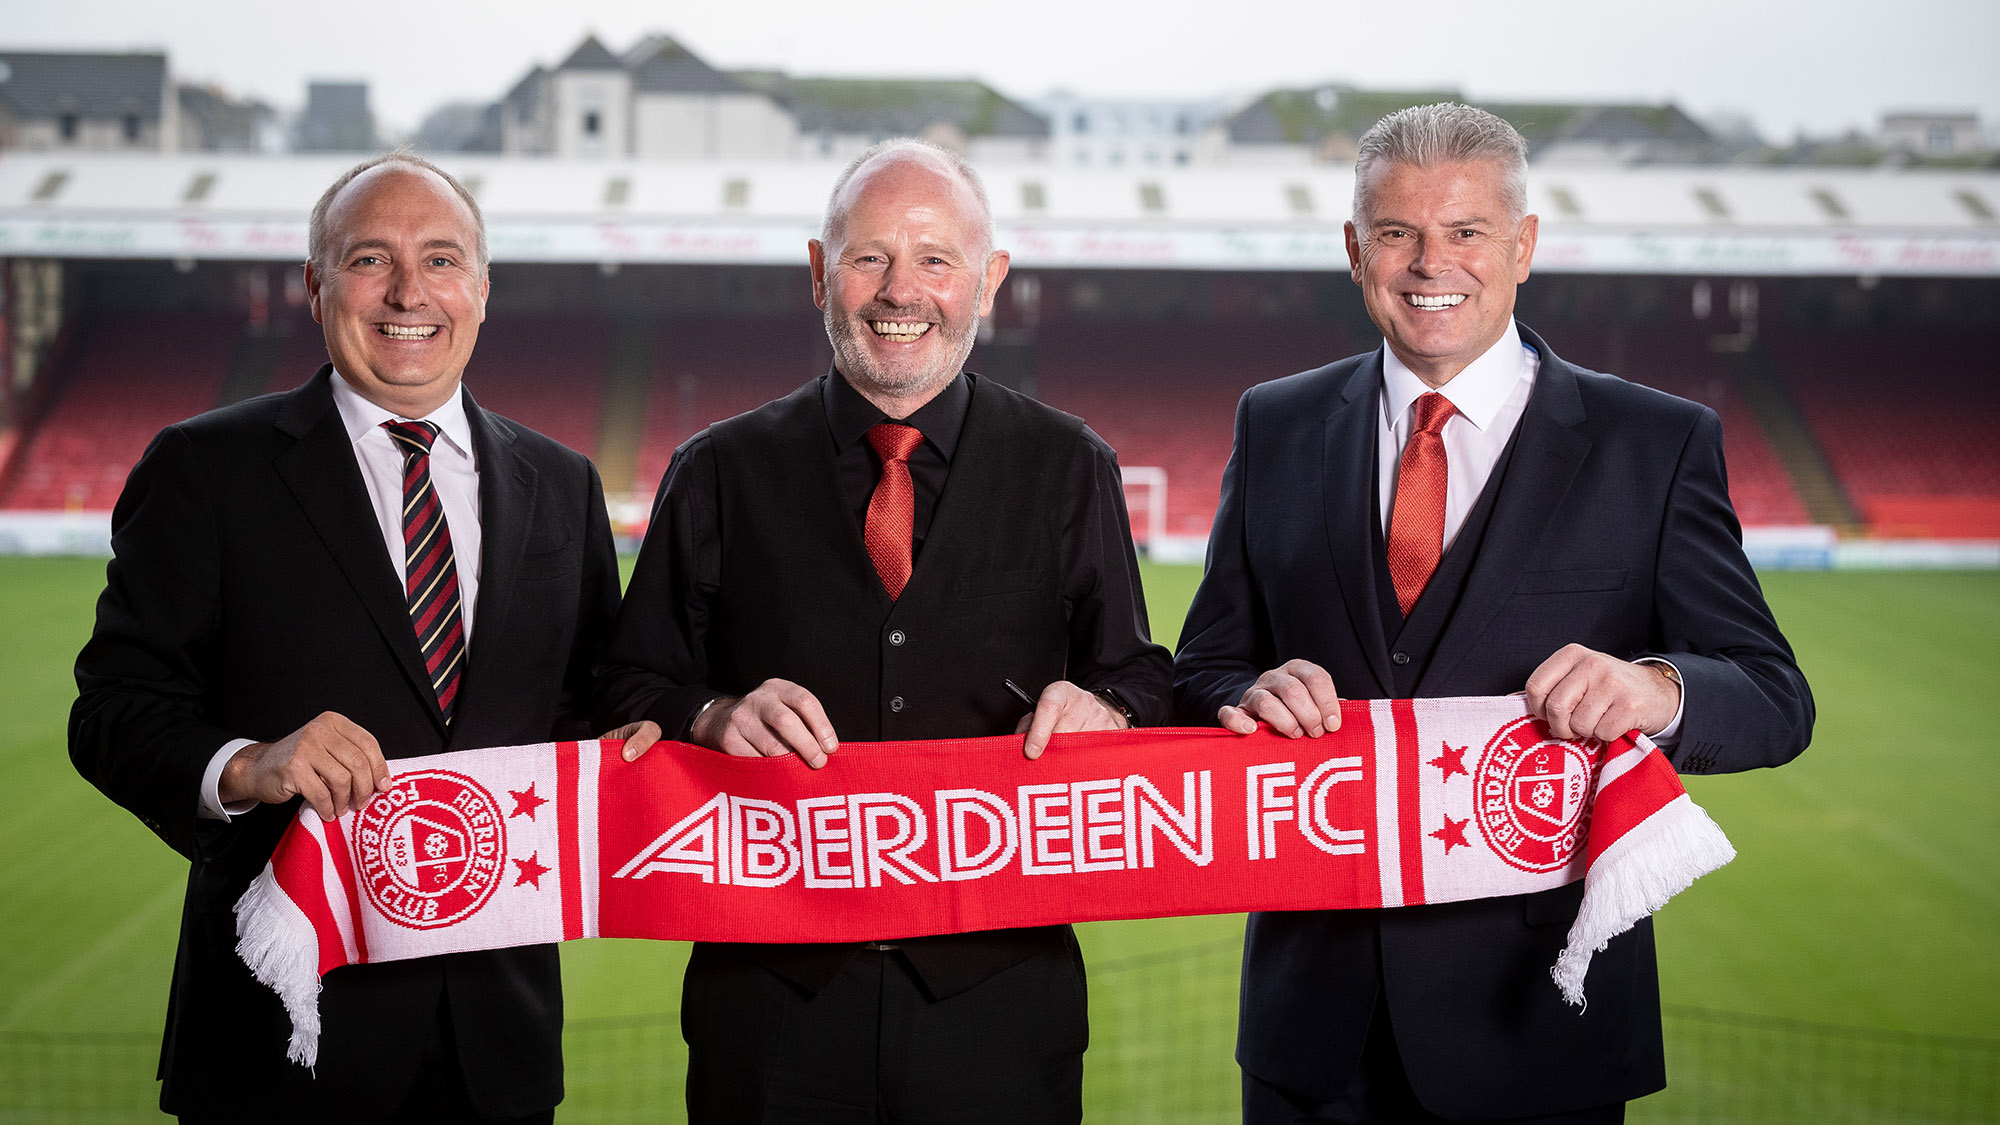 Aberdeen fc ex managers investment 3g investment group wiki